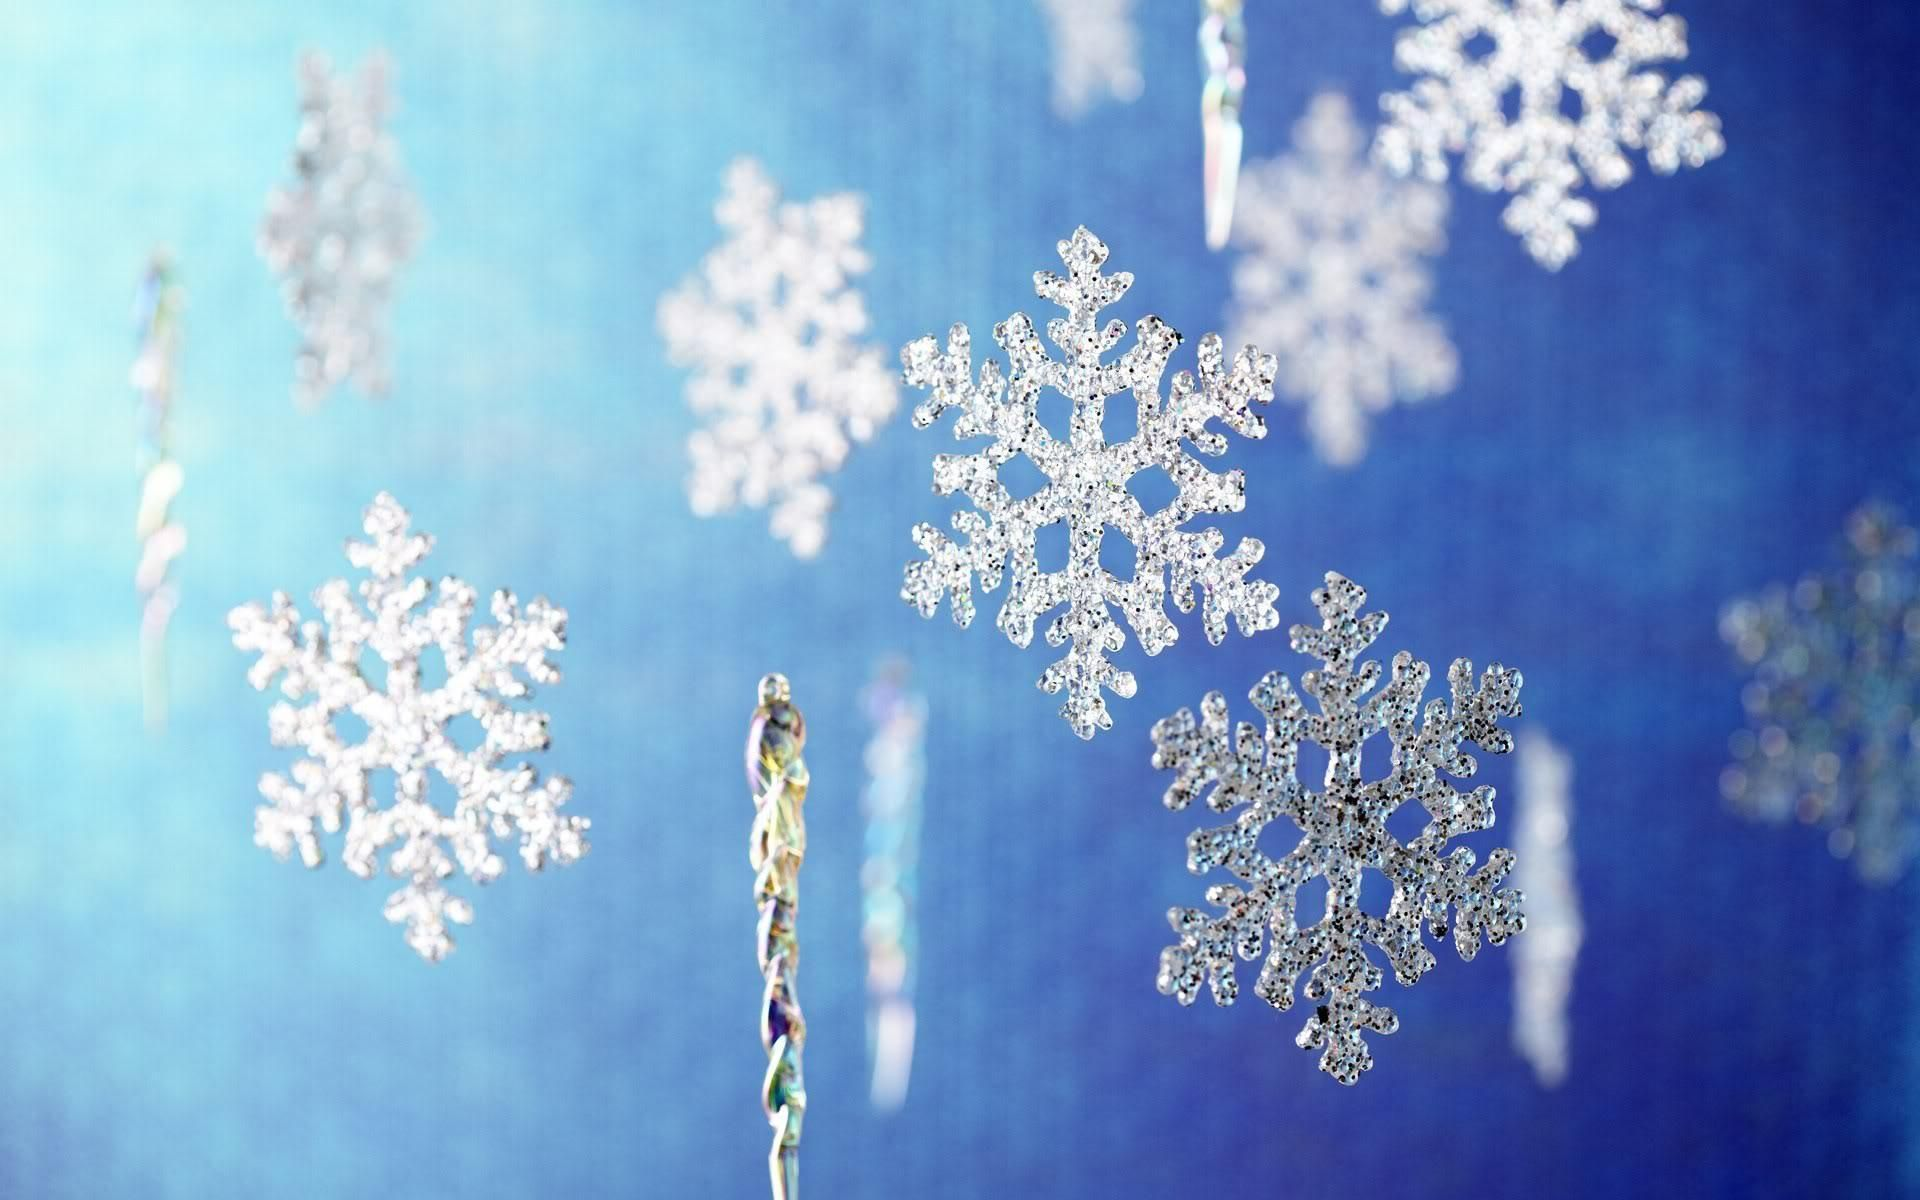 Full Hd P Snowflake Wallpapers Hd Desktop Backgrounds Wallpapers